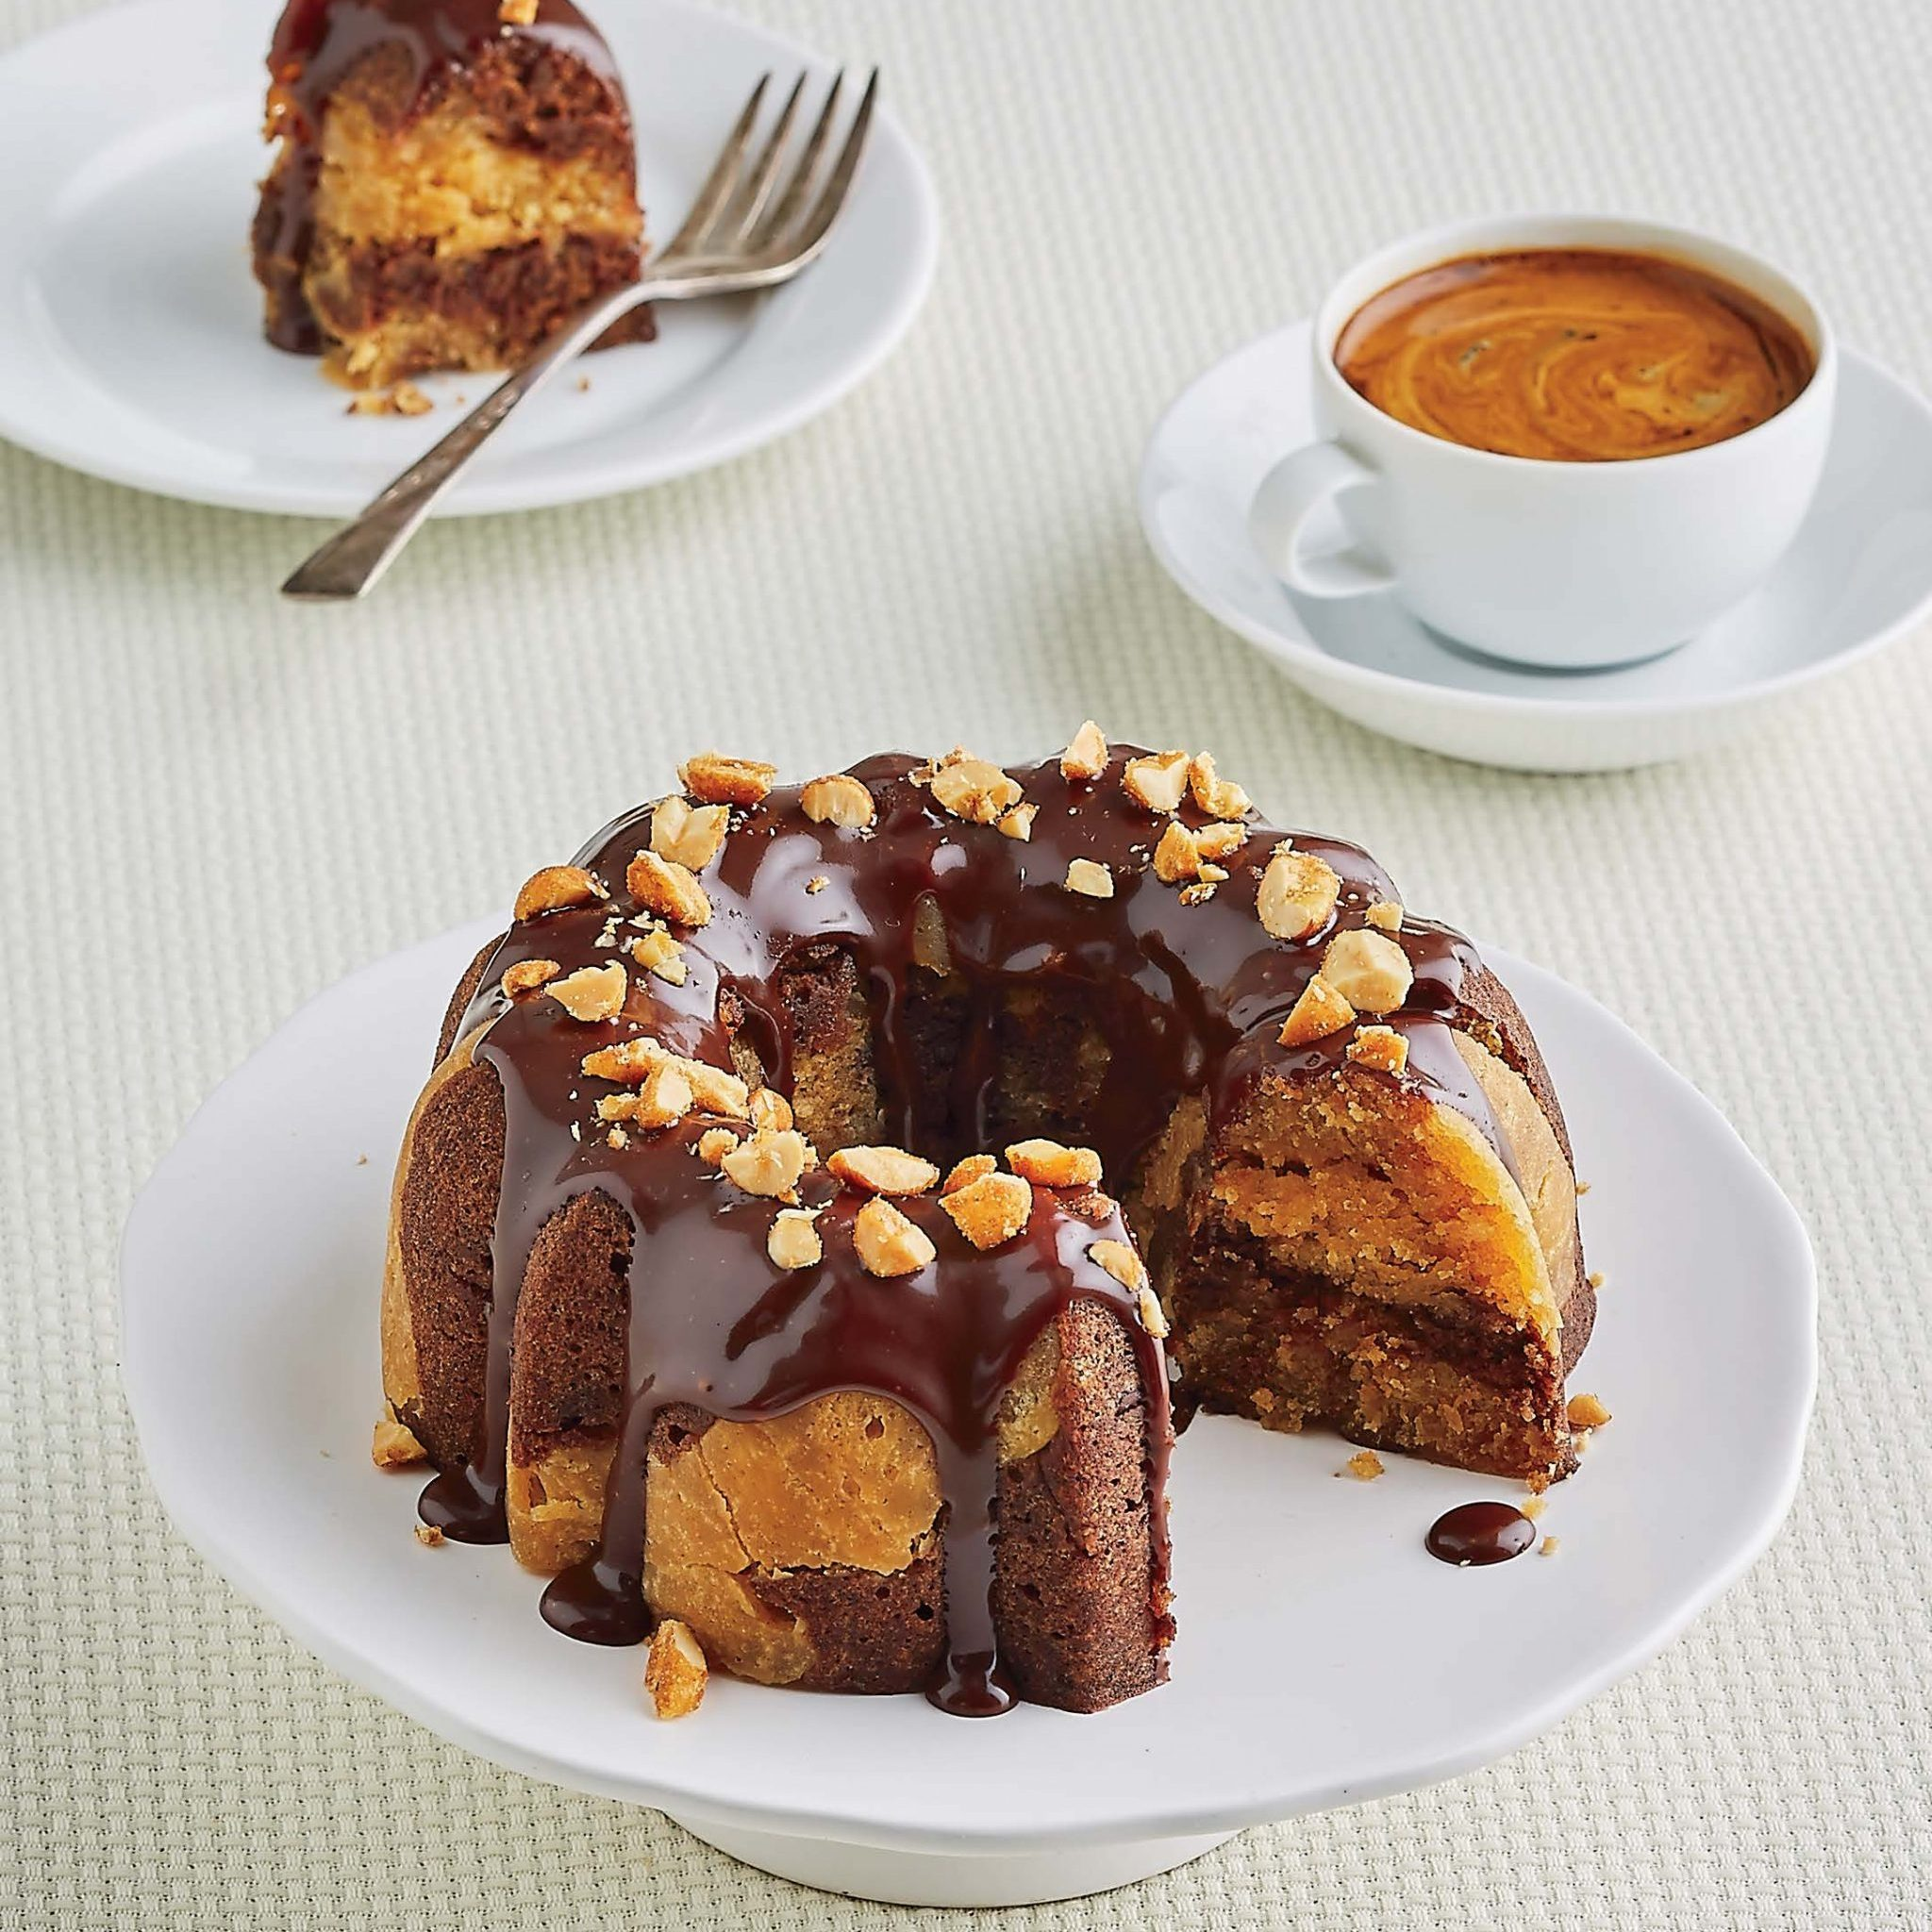 Peanut Butter-Chocolate Bundt Cake